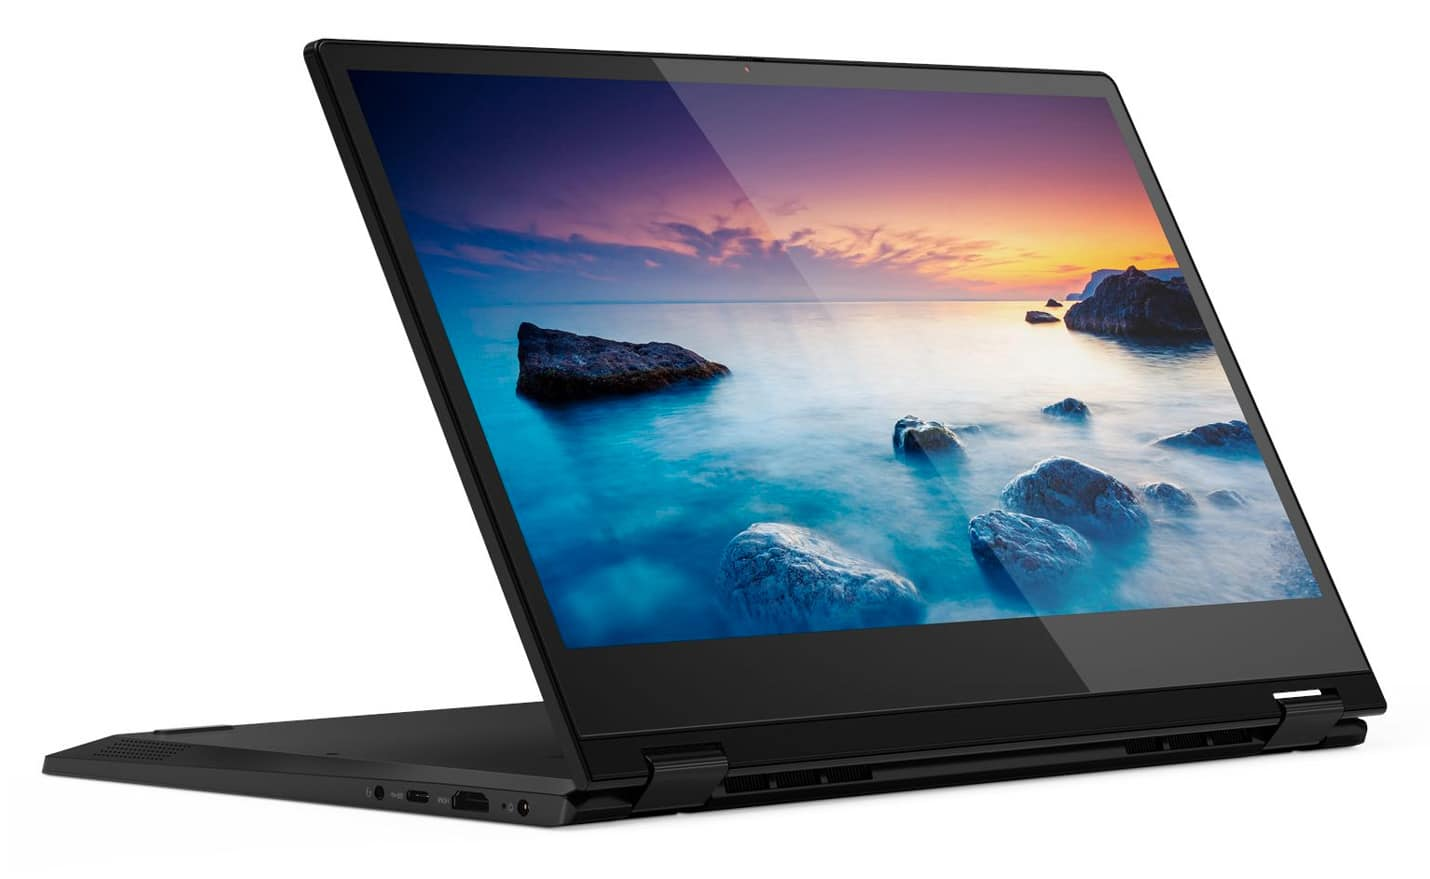 Lenovo Ideapad C340-14IWL, 14 pouces Tablette MX230 (935€)